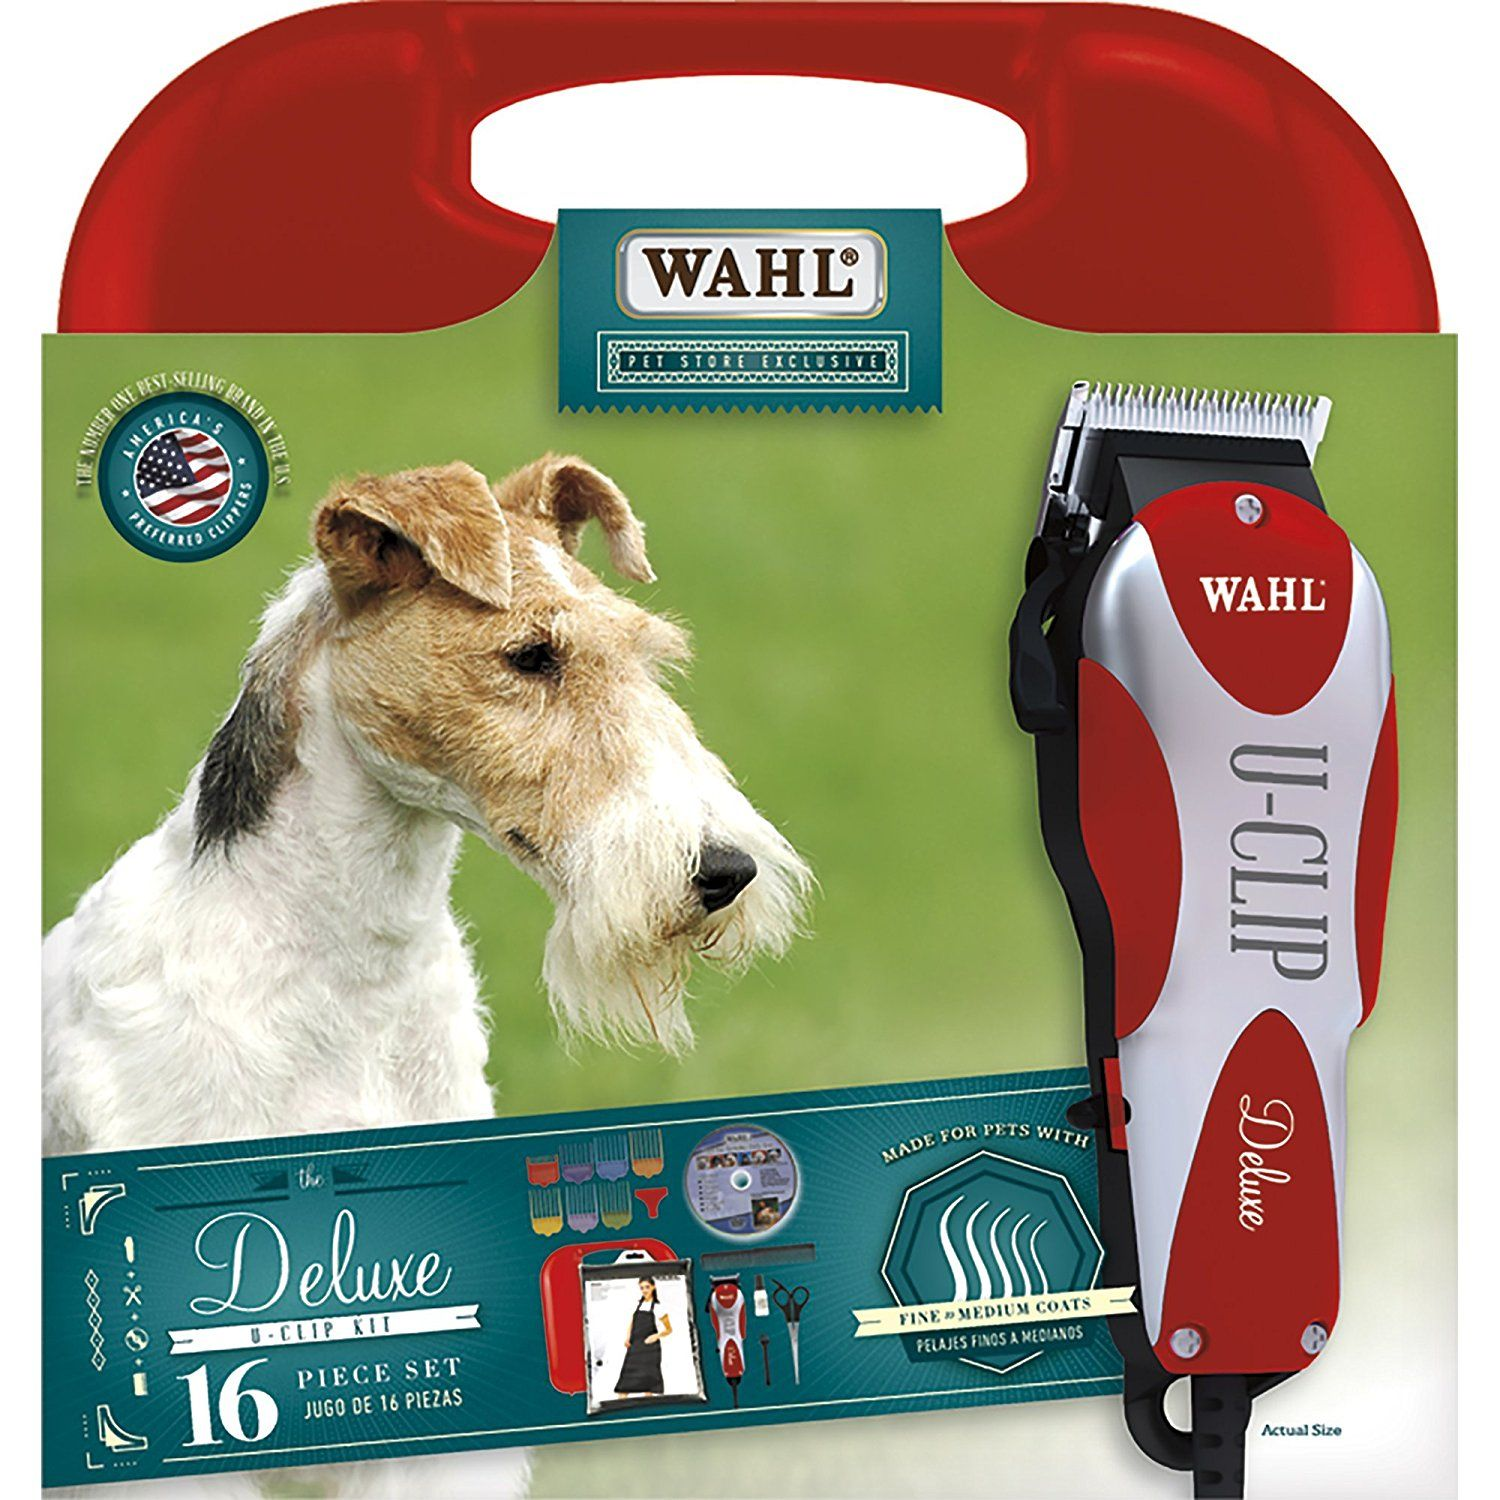 Wahl U Clip Pet Clipper Kit You Can Find More Details By Visiting The Image Link This Is An Affiliate Link Pet Grooming Dog Grooming Supplies Dog Grooming